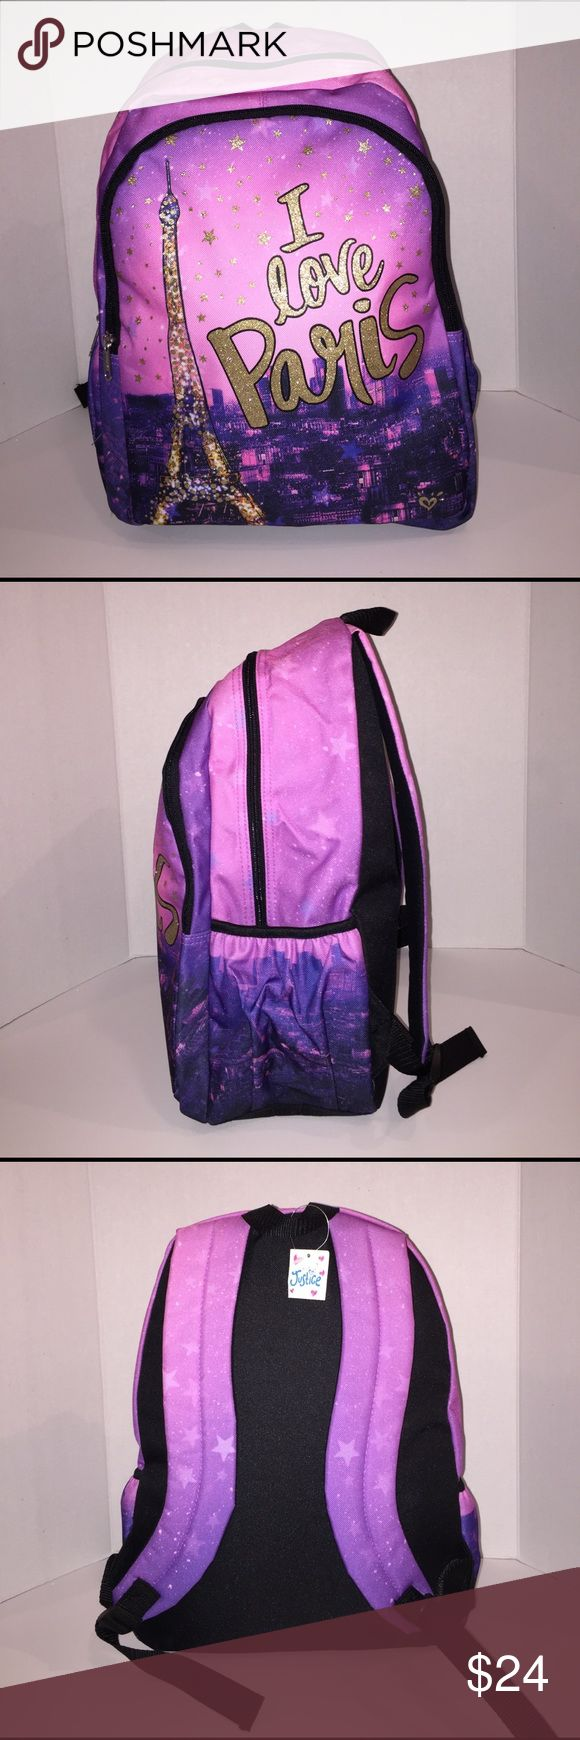 "Brand-new girls Justice backpack Brand-new with tags. I love Paris backpack. Two large main zippered compartments. Side pockets for drinks. Color pink/purple/gold. Measures approximately 16.5"" x 13"". Justice Accessories Bags"